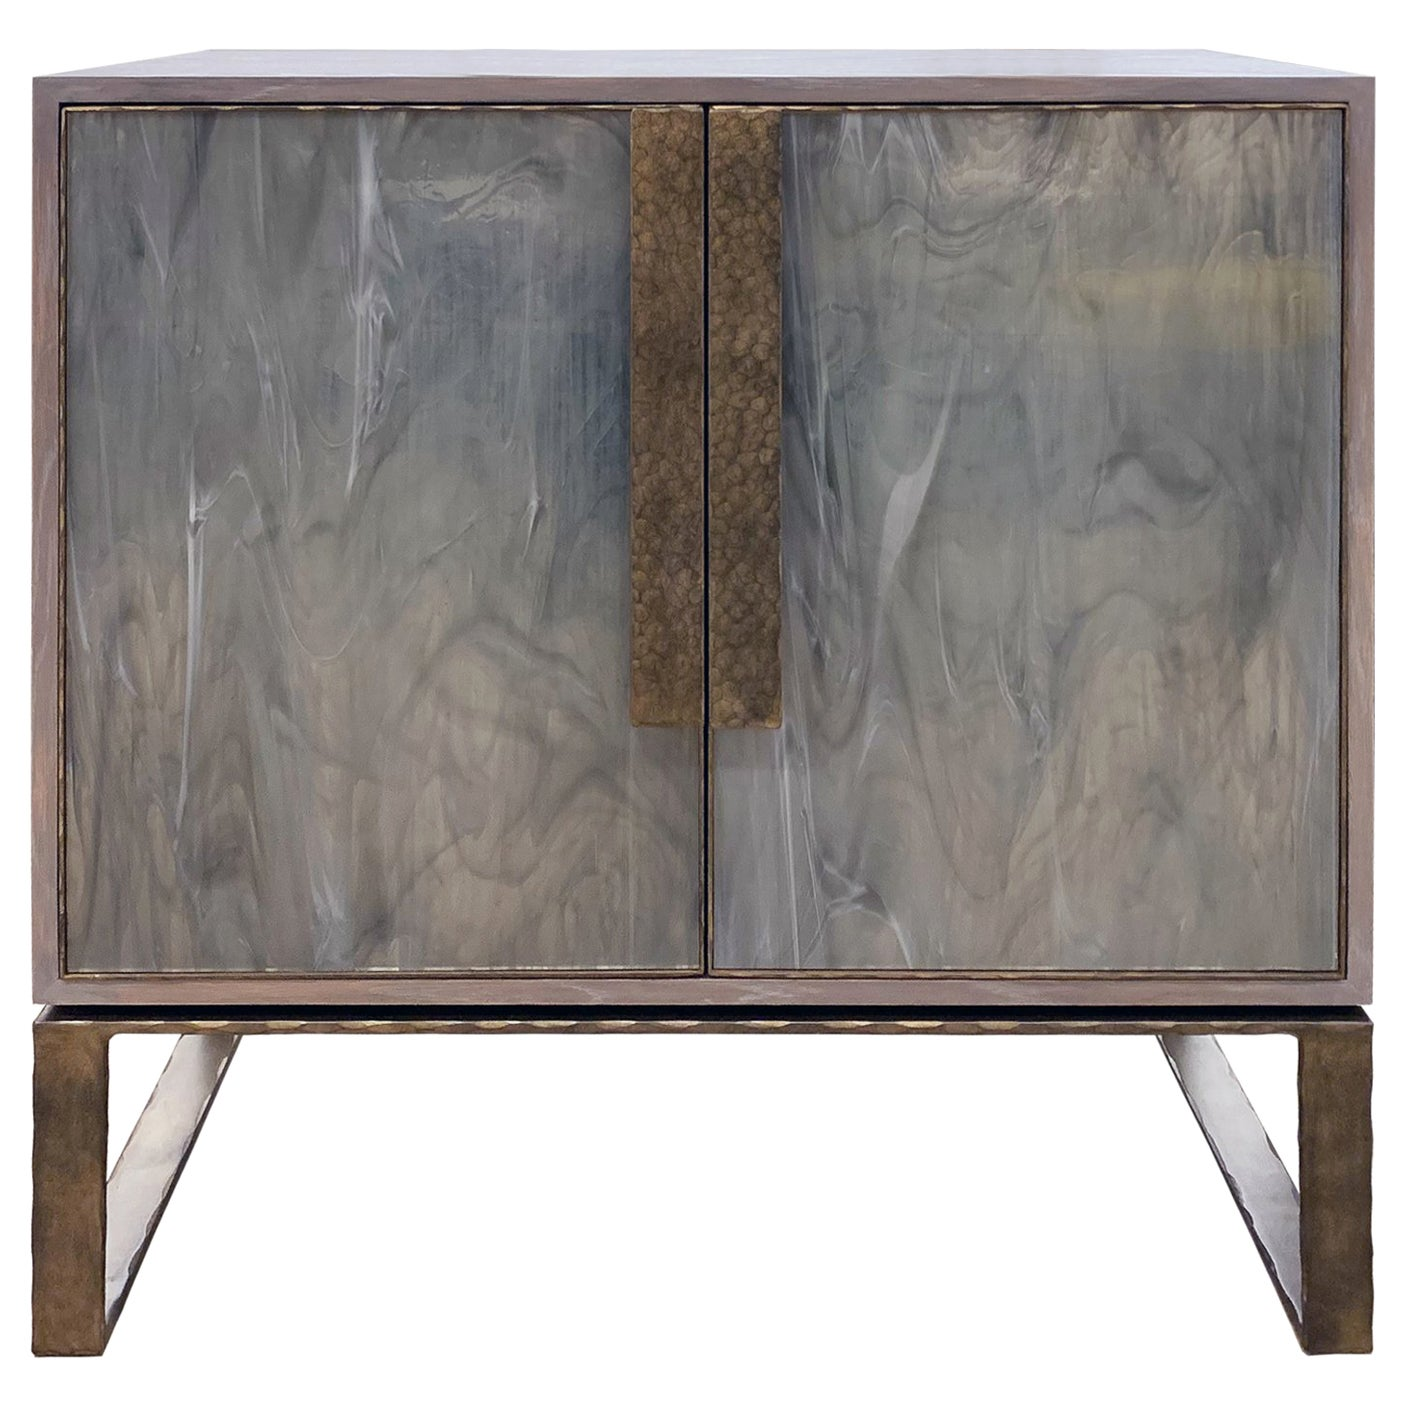 Customizable Chelsea Gray Glass Credenza with Metal Base by Ercole Home